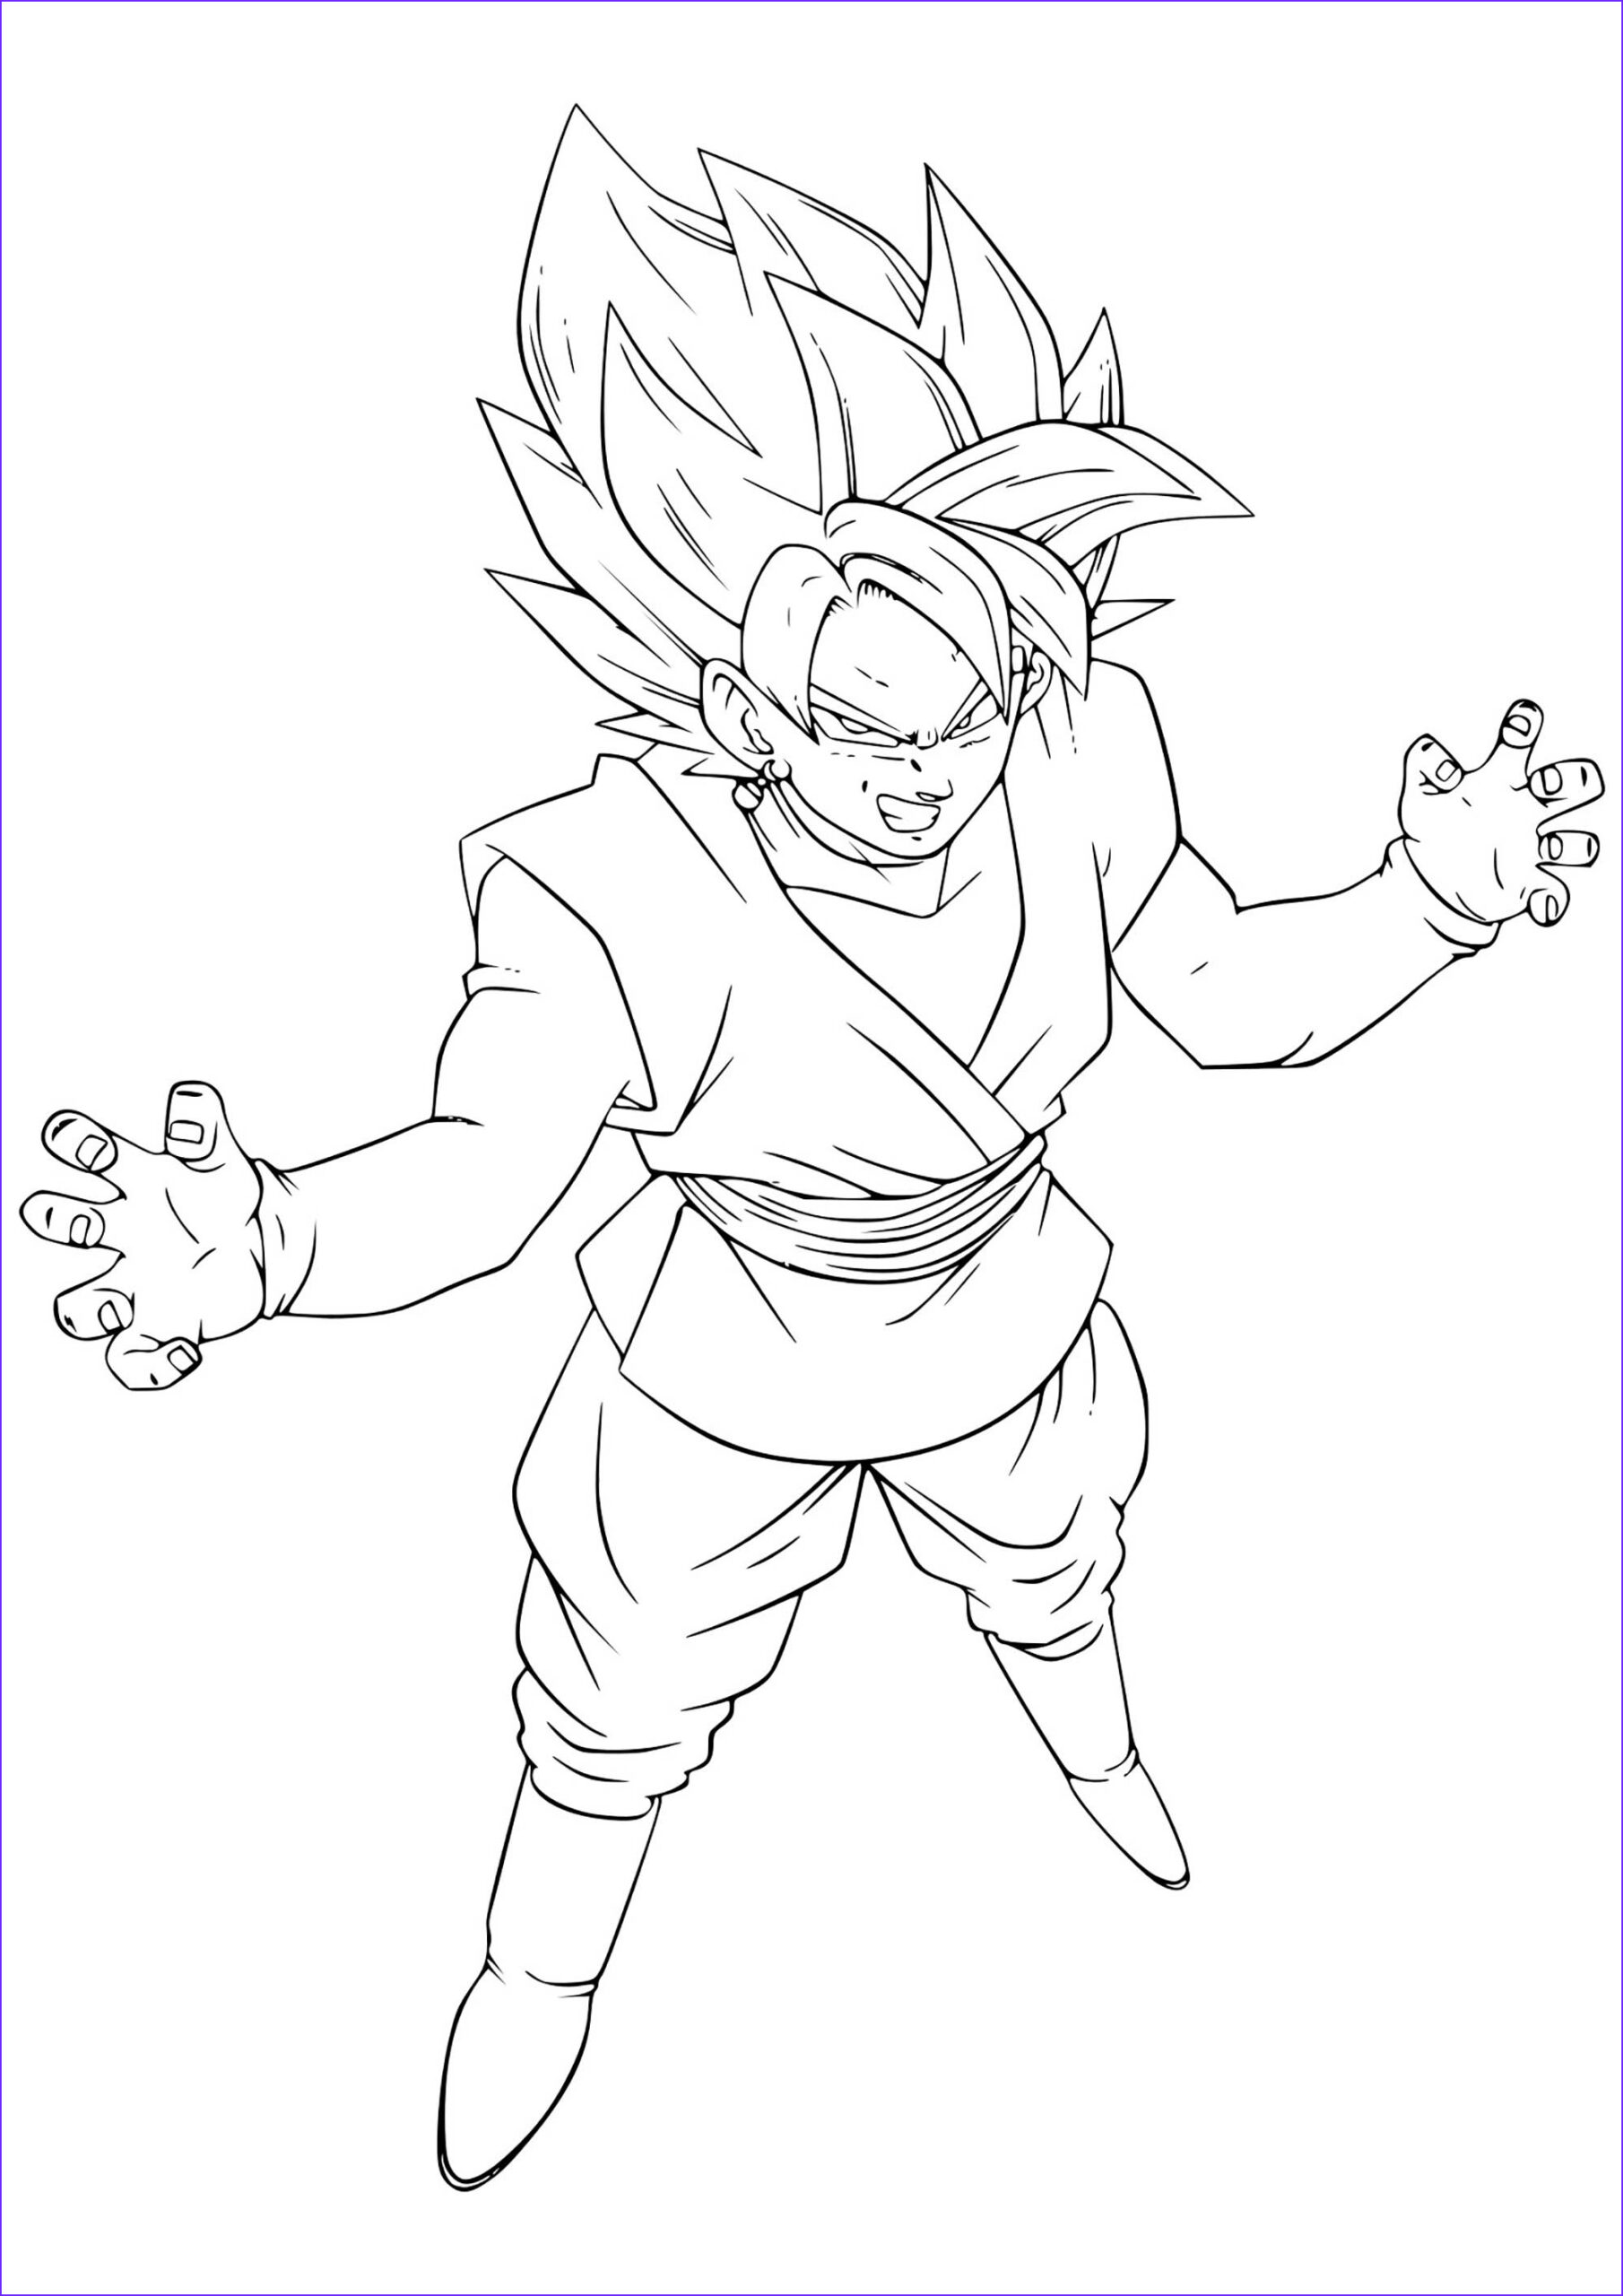 Dragon Ball Z Coloring Pages Beautiful Photos Black Pink Goku Dragon Ball Z Kids Coloring Pages